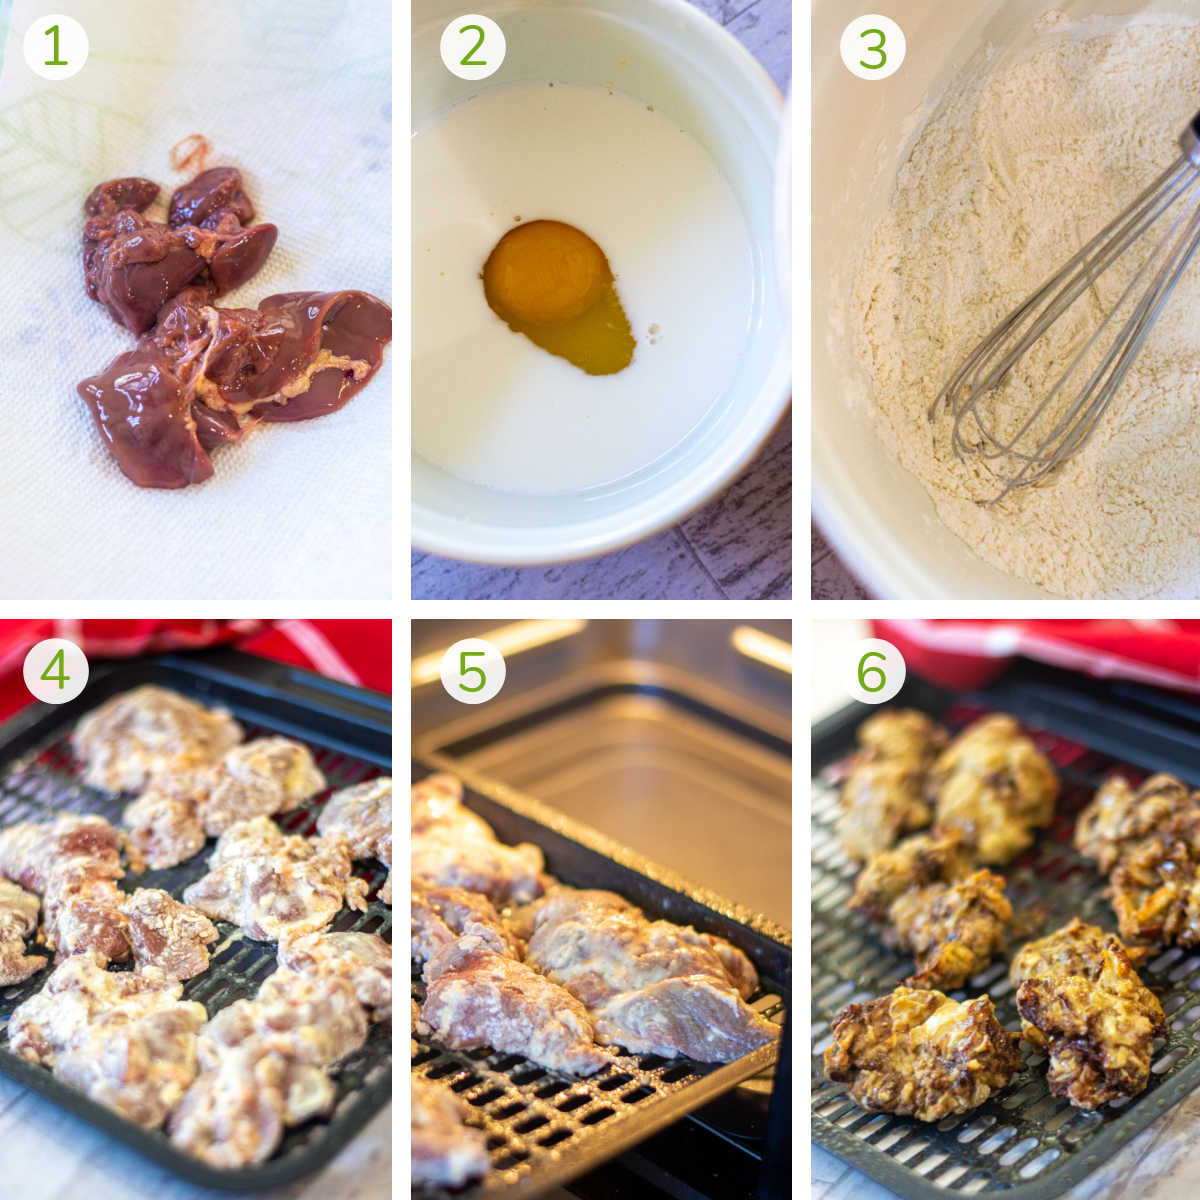 several process photos showing patting the liver, dipping it in flour and air frying it.